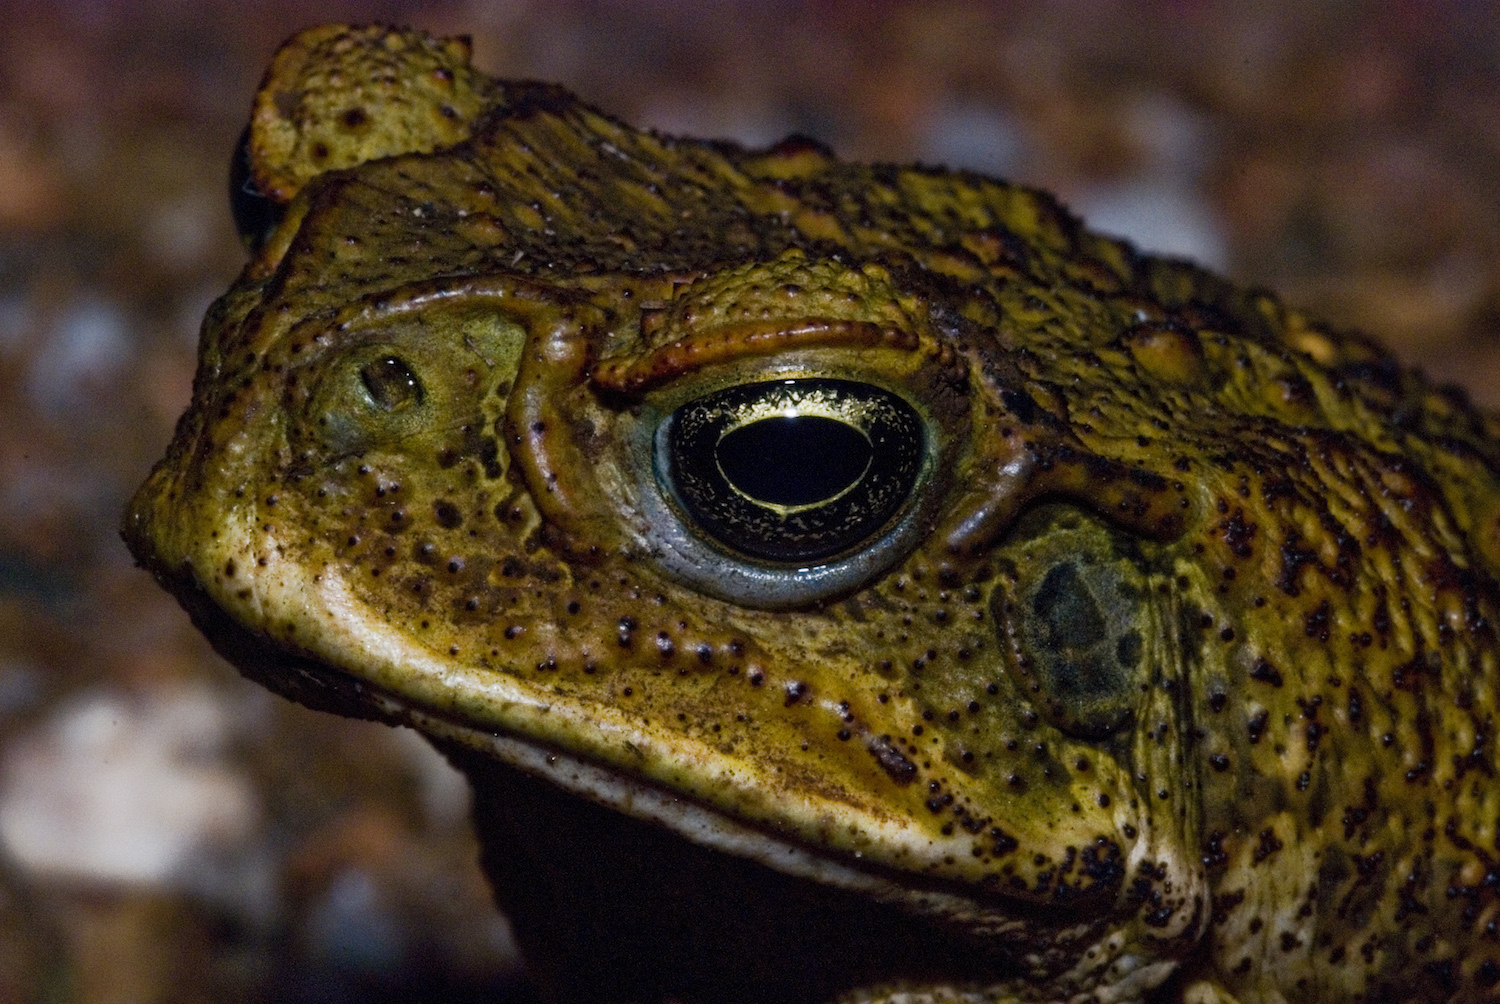 The cane toad is rapidly adapting to life in Australia.  Rod Barber/Flickr (CC BY-NC-ND 2.0)